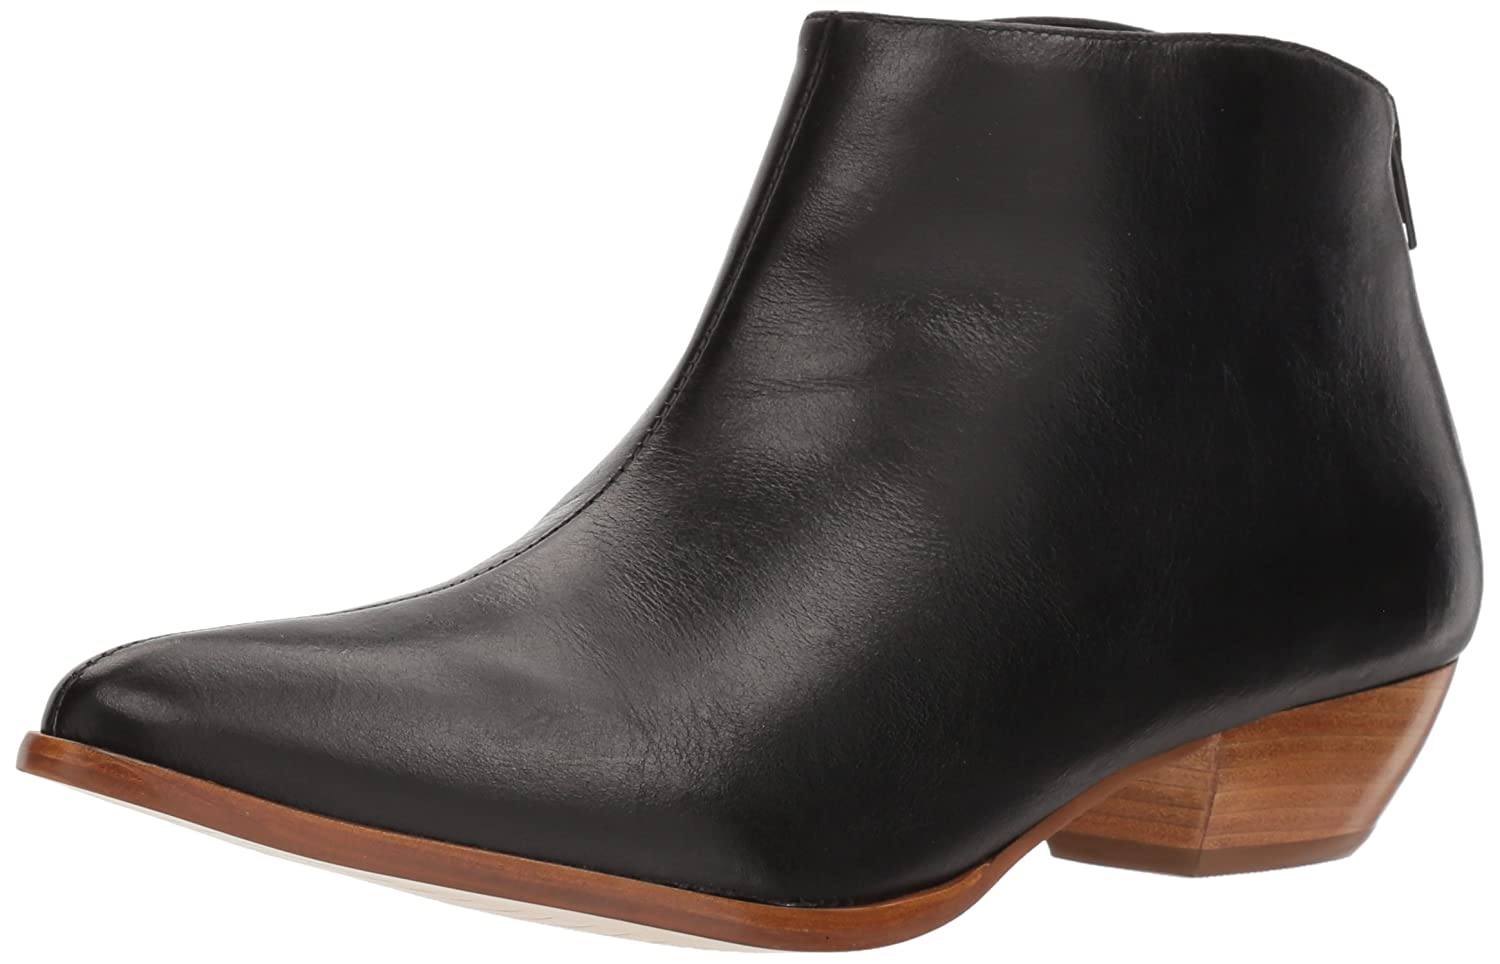 Matisse Women's Aida Ankle Boot B0767T3WY8 9 B(M) US|Black Leather